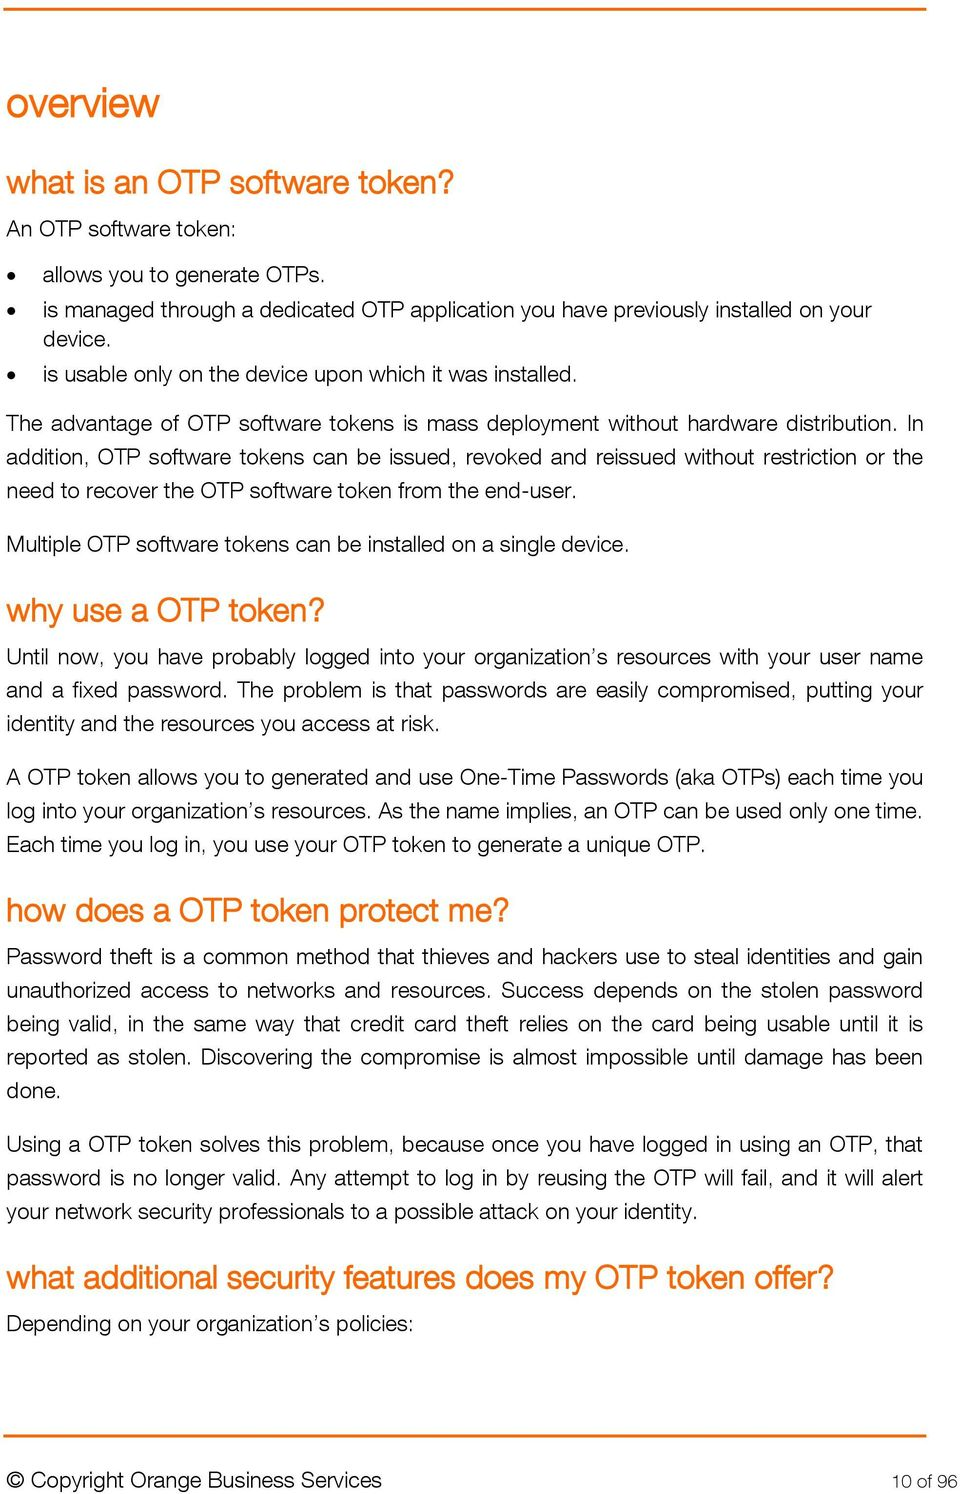 In addition, OTP software tokens can be issued, revoked and reissued without restriction or the need to recover the OTP software token from the end-user.